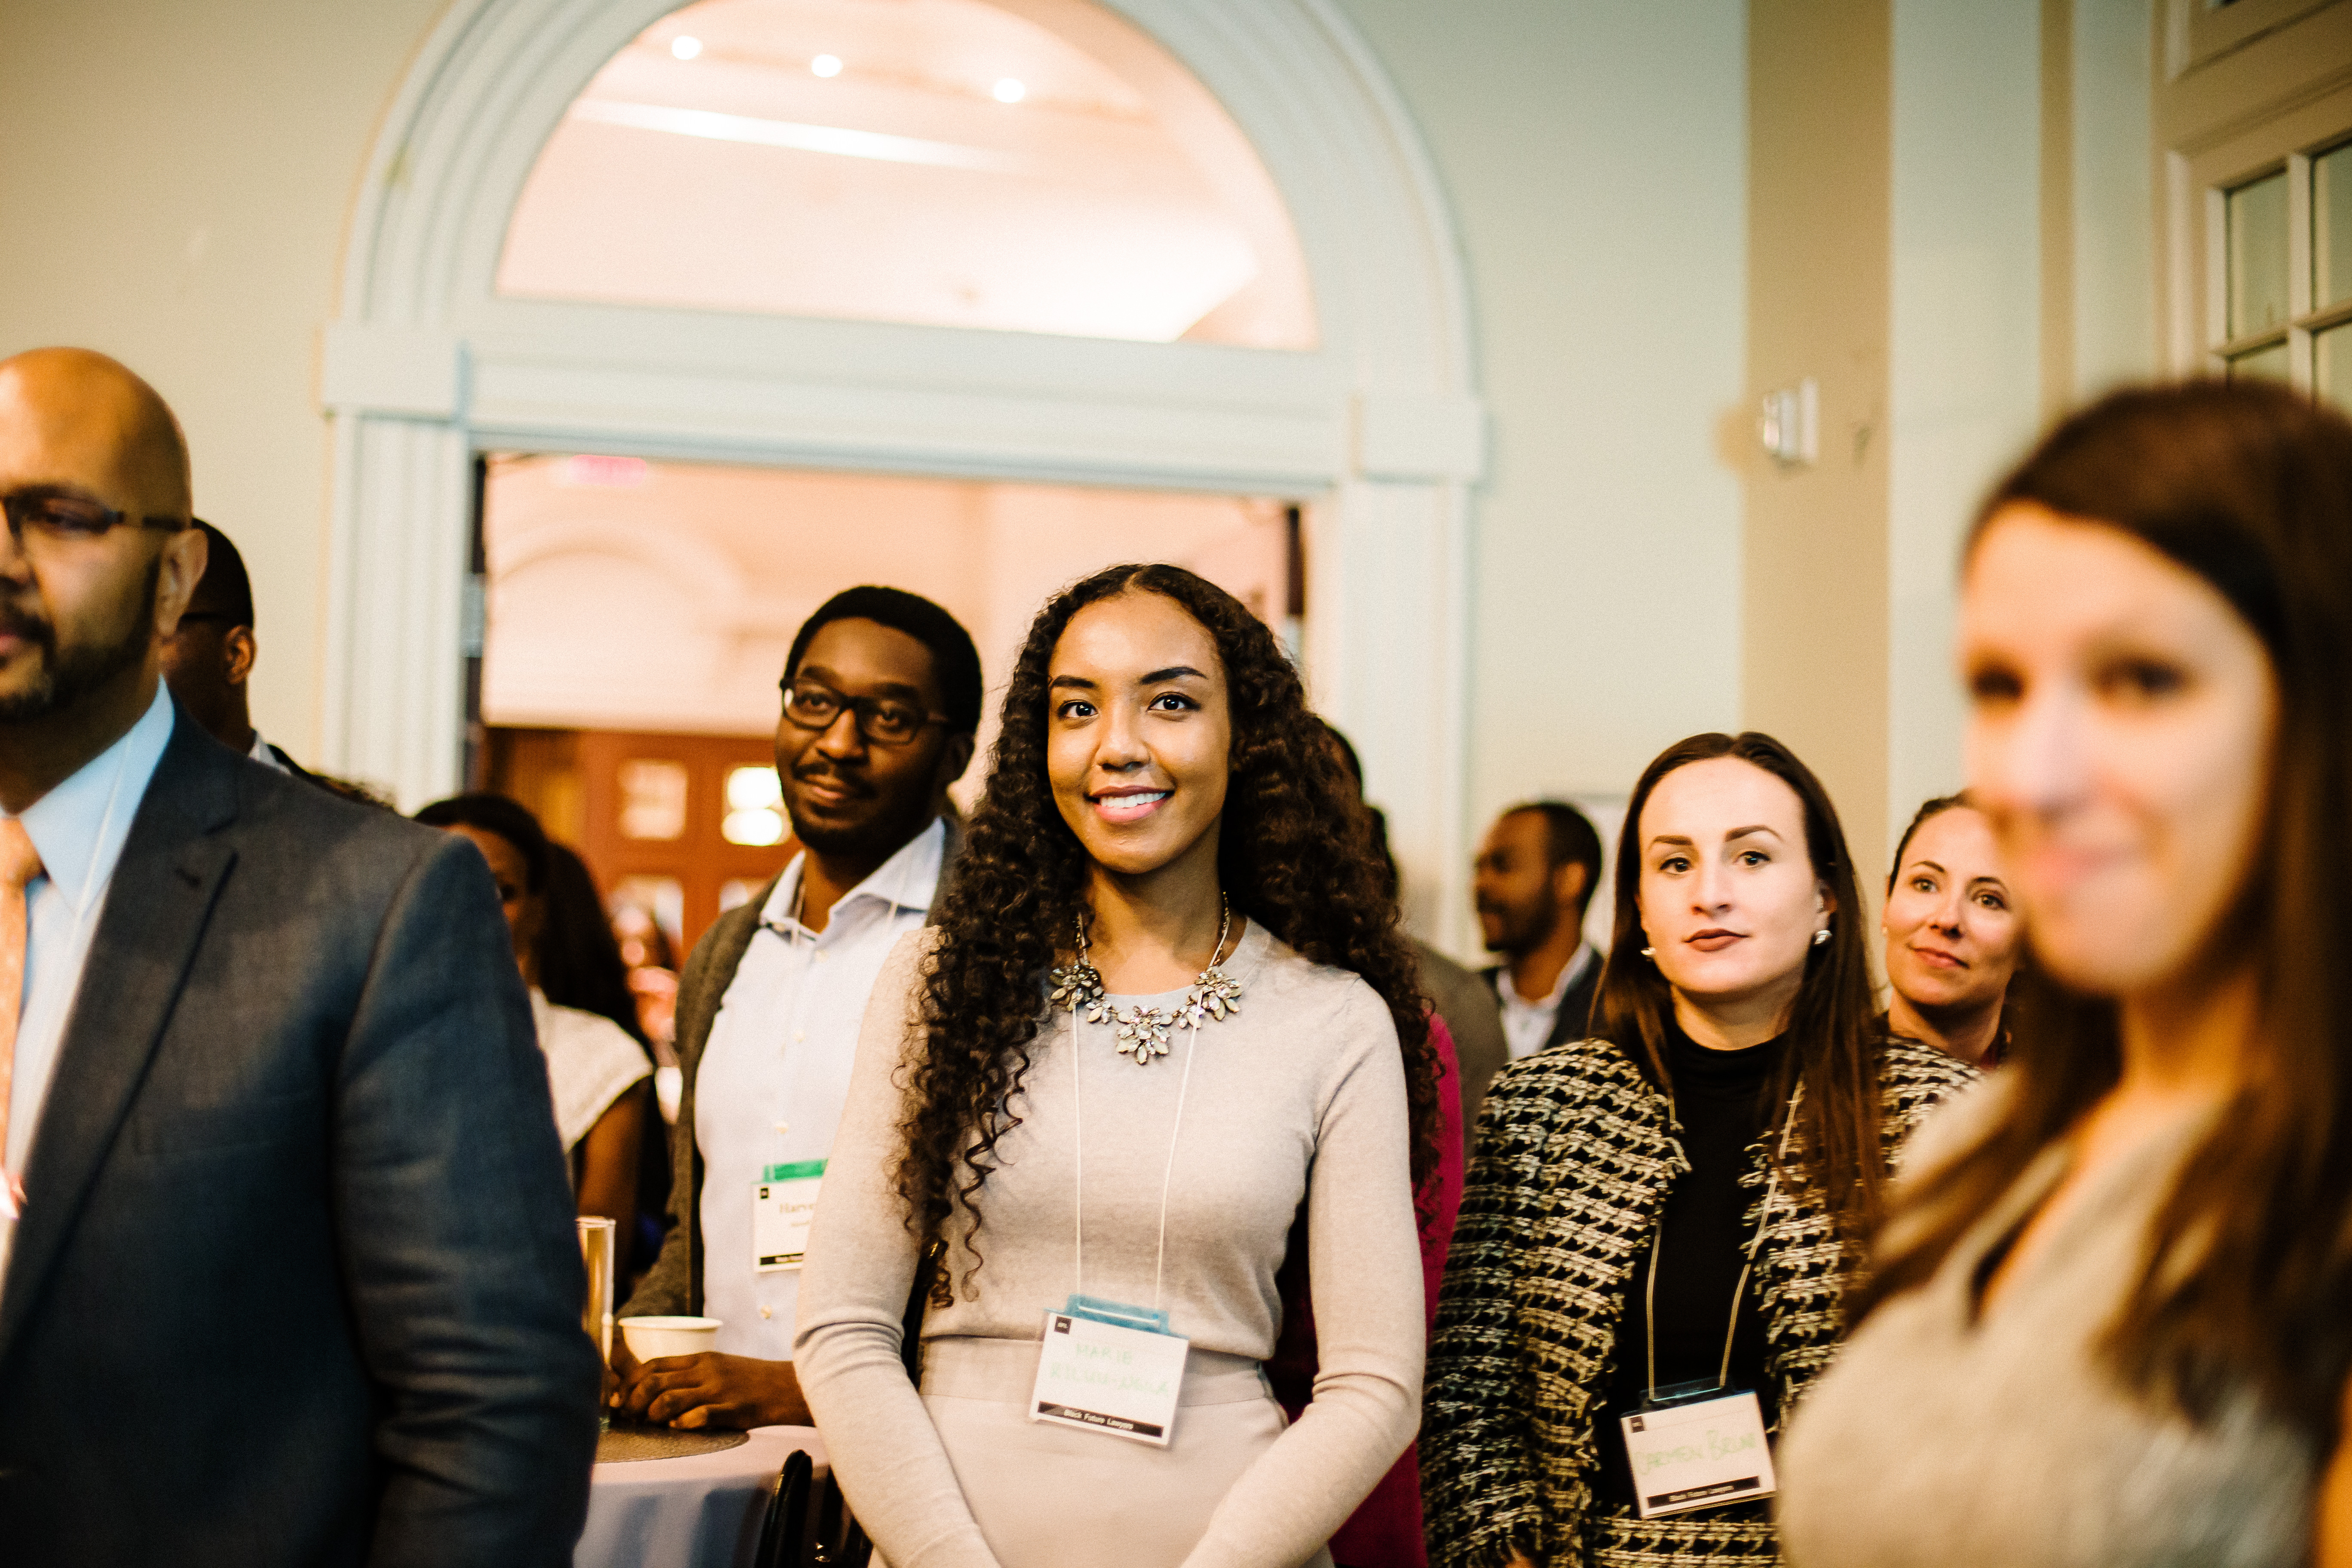 Marie Kiluu-Nigila (centre) at the Black Future Lawyers launch event in January 2020 (photo by Muna Khalil/View in Lens Photography)